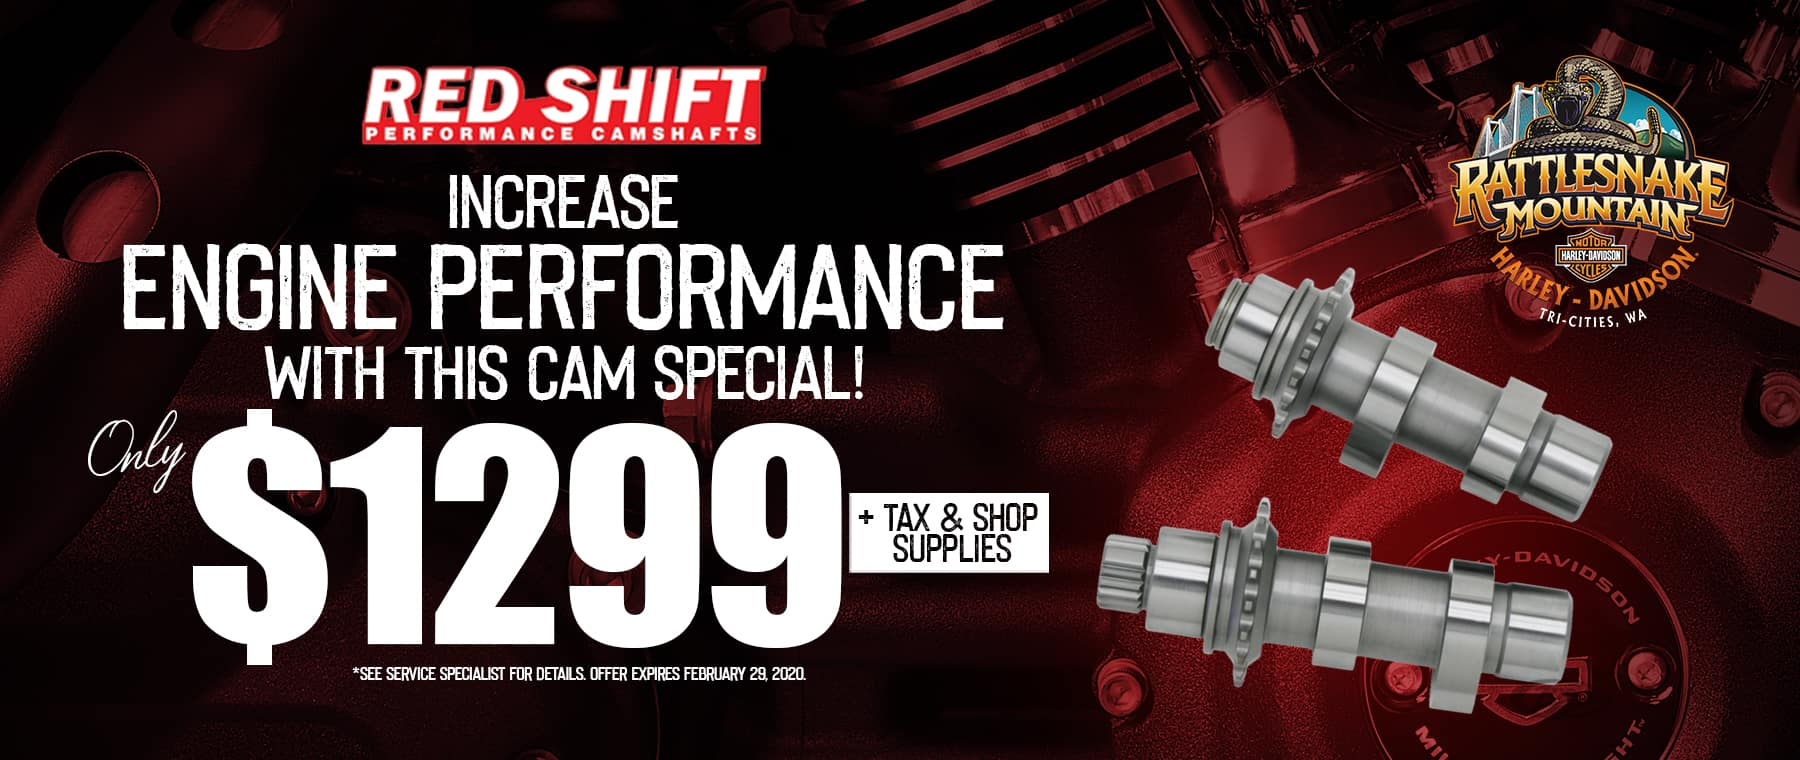 Increase engine performance with this cam special!